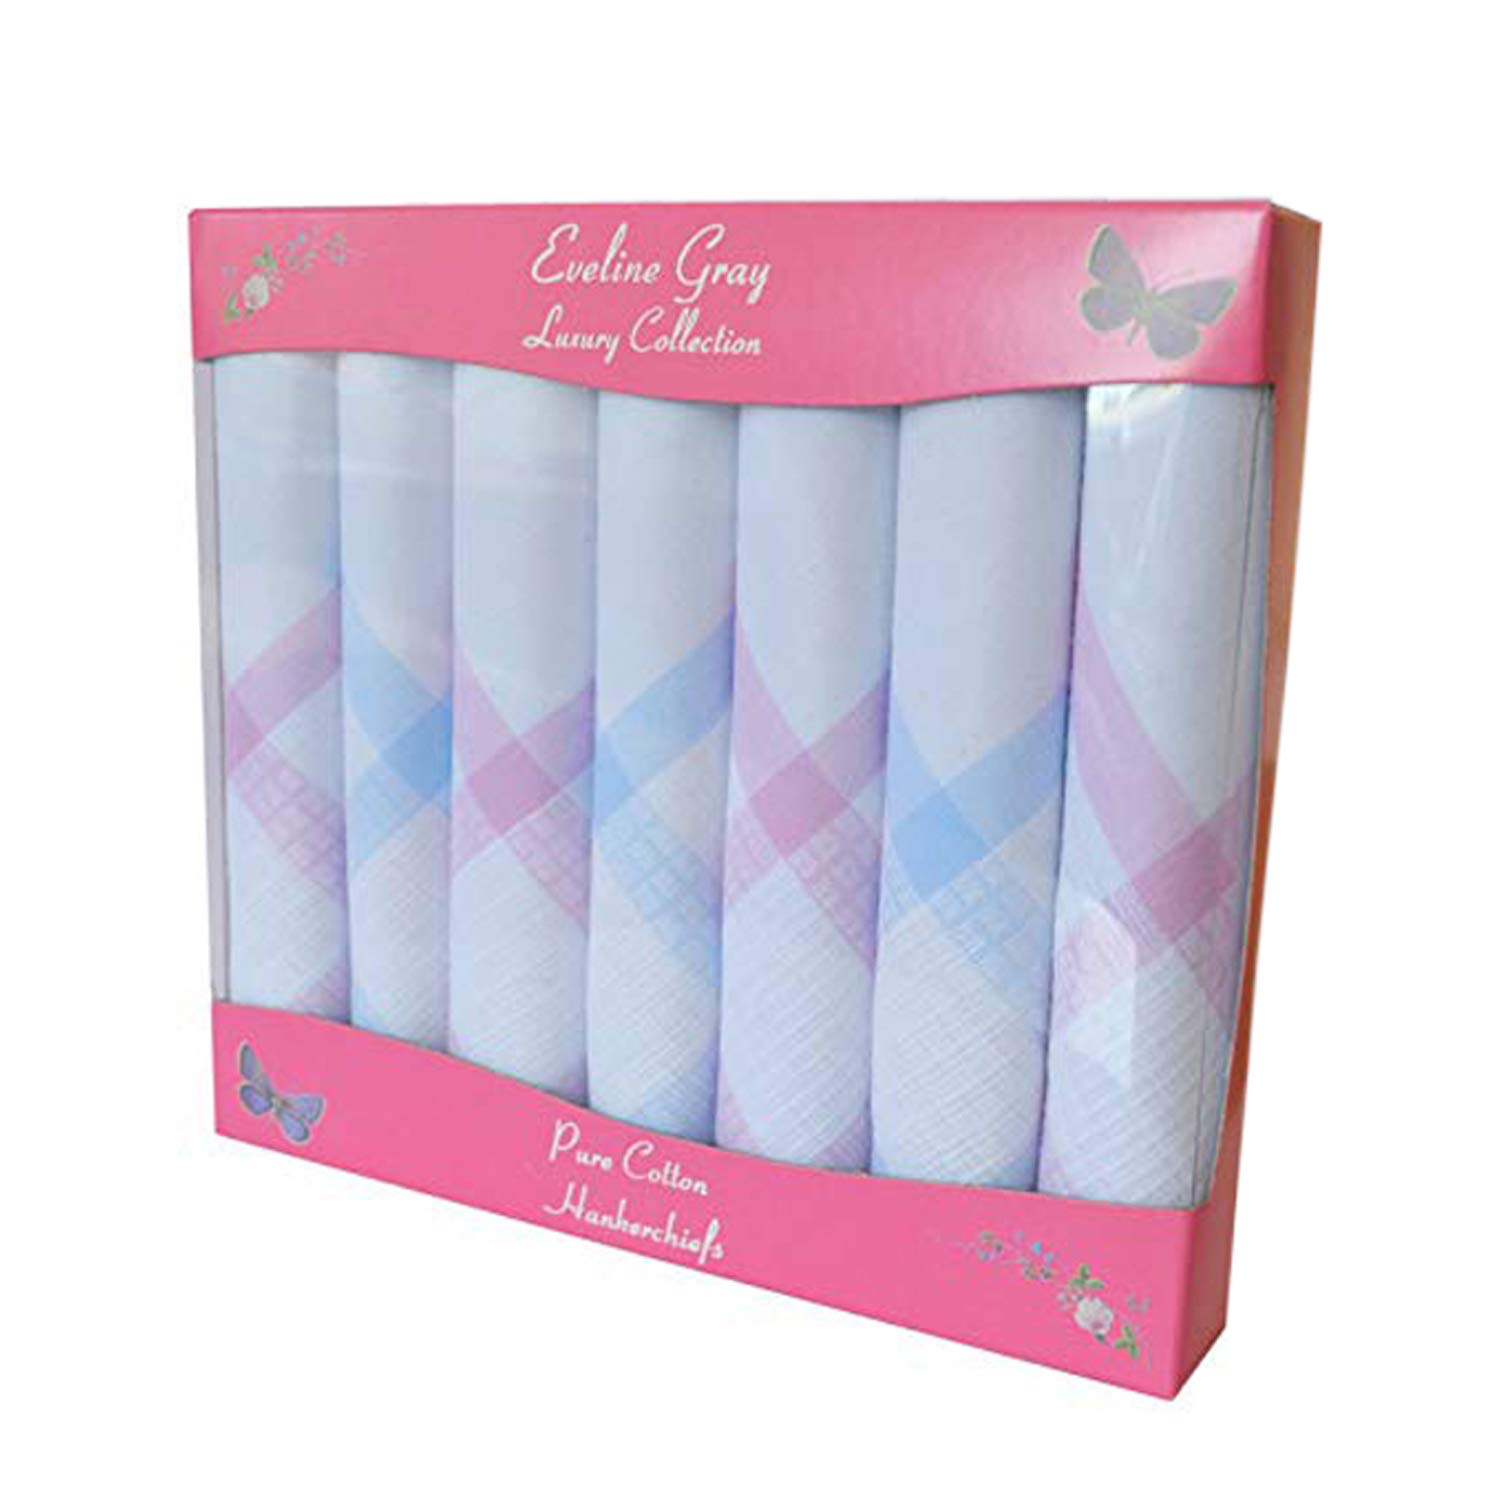 7 Pack Ladies 100% Cotton Coloured Woven Border Satin Handkerchiefs In Gift Box